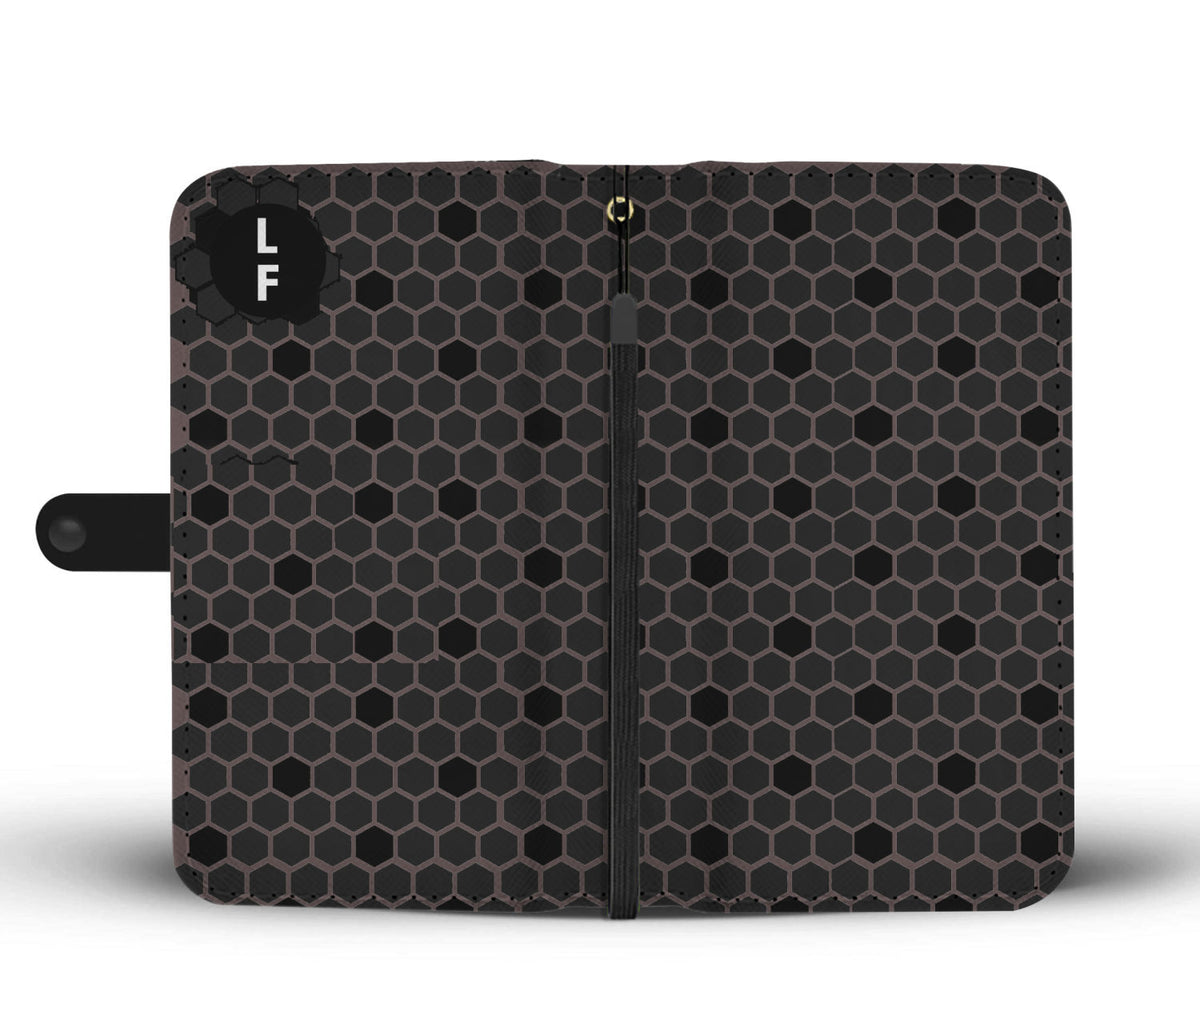 Rfid Phone Case Honeycomb Pattern - From Luggagefactory